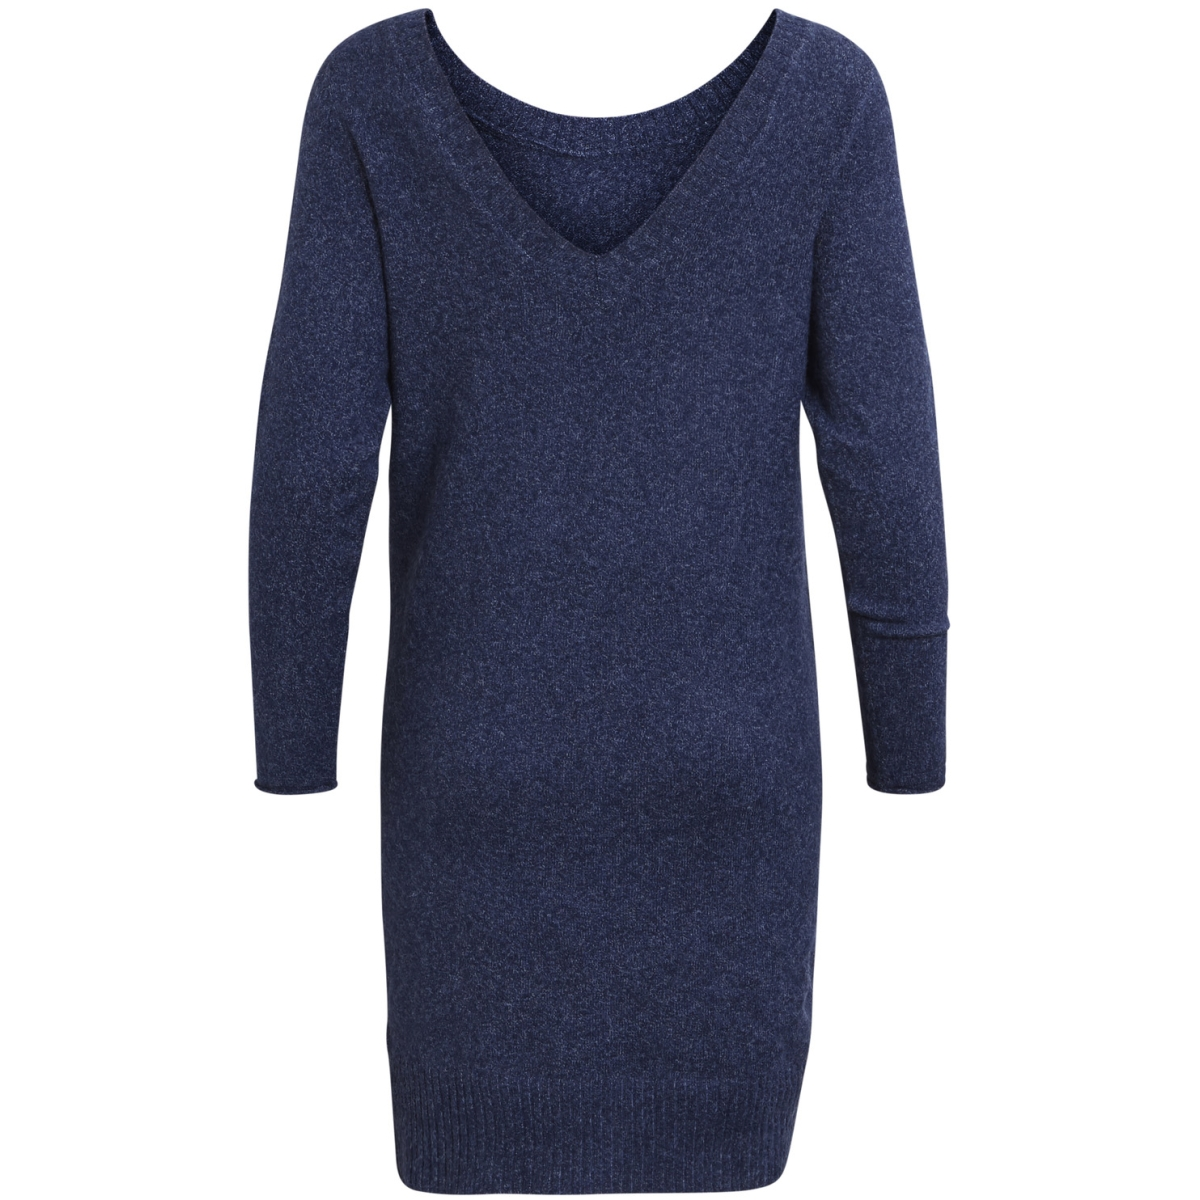 vispecific l/s knit dress 14043861 vila jurk dark navy/white mela